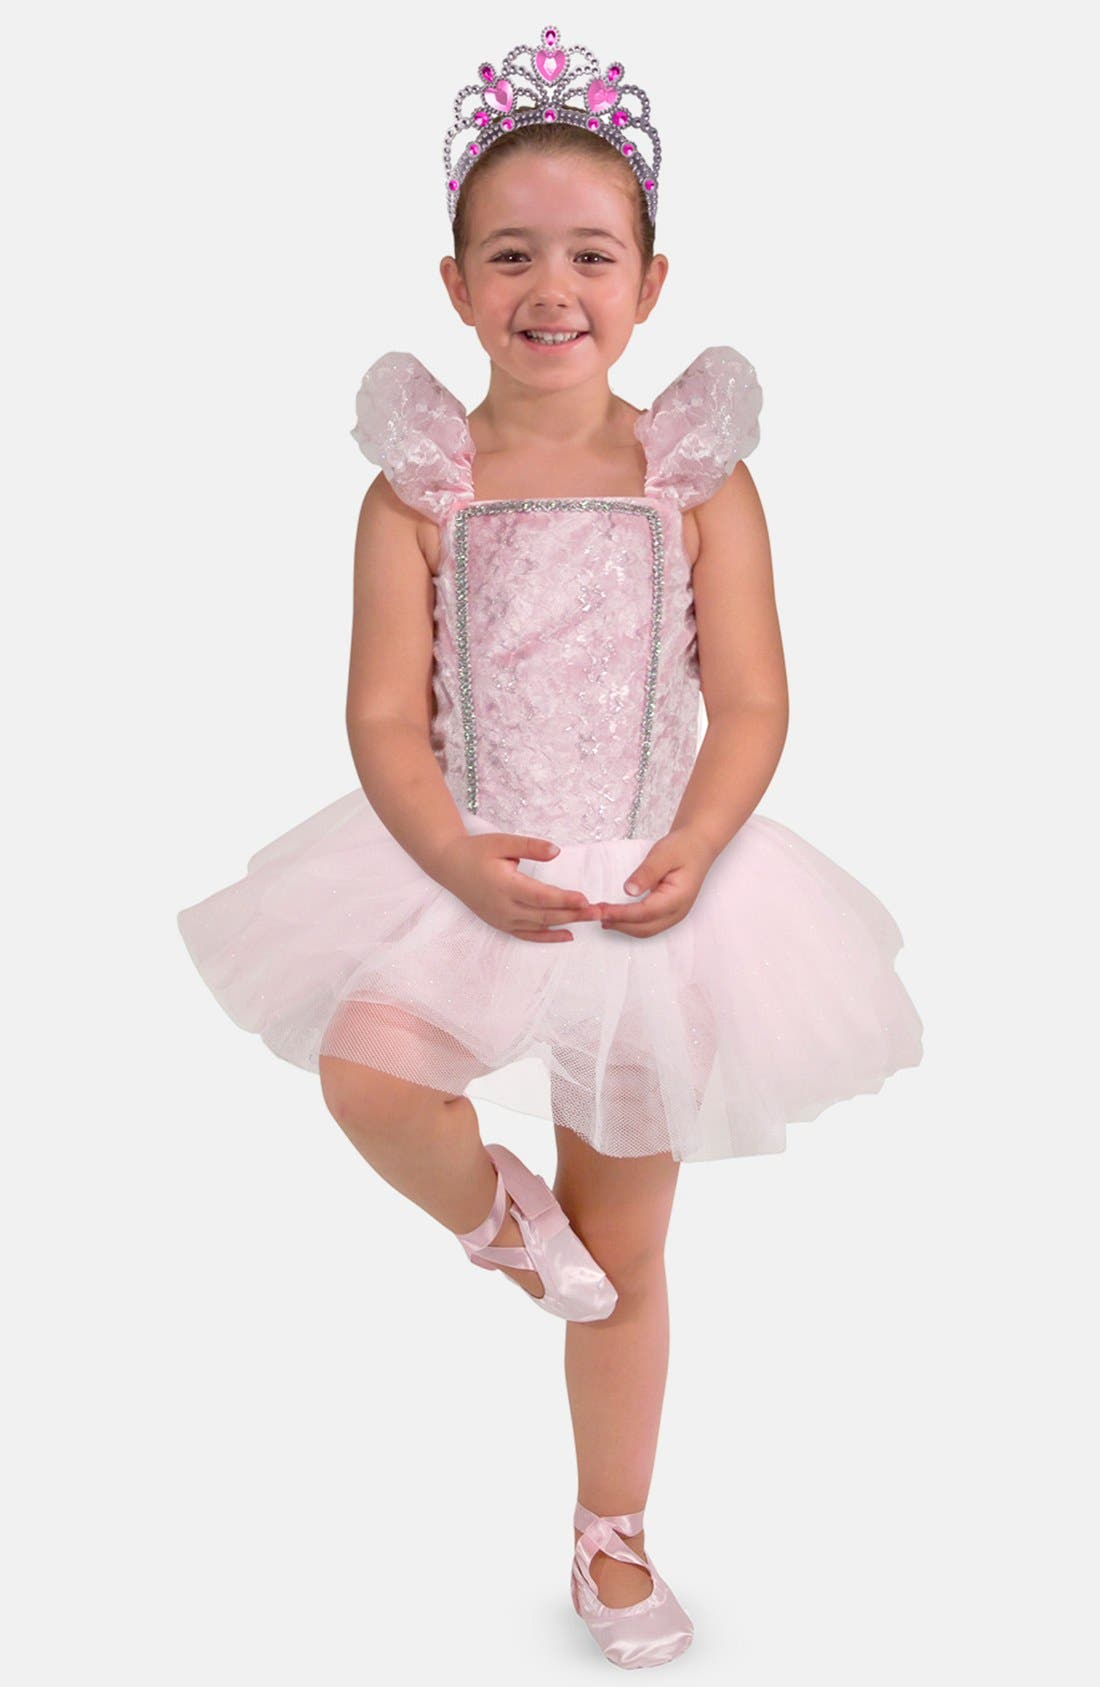 Alternate Image 1 Selected - Melissa & Doug Ballerina Role Play Set (Little Girls)